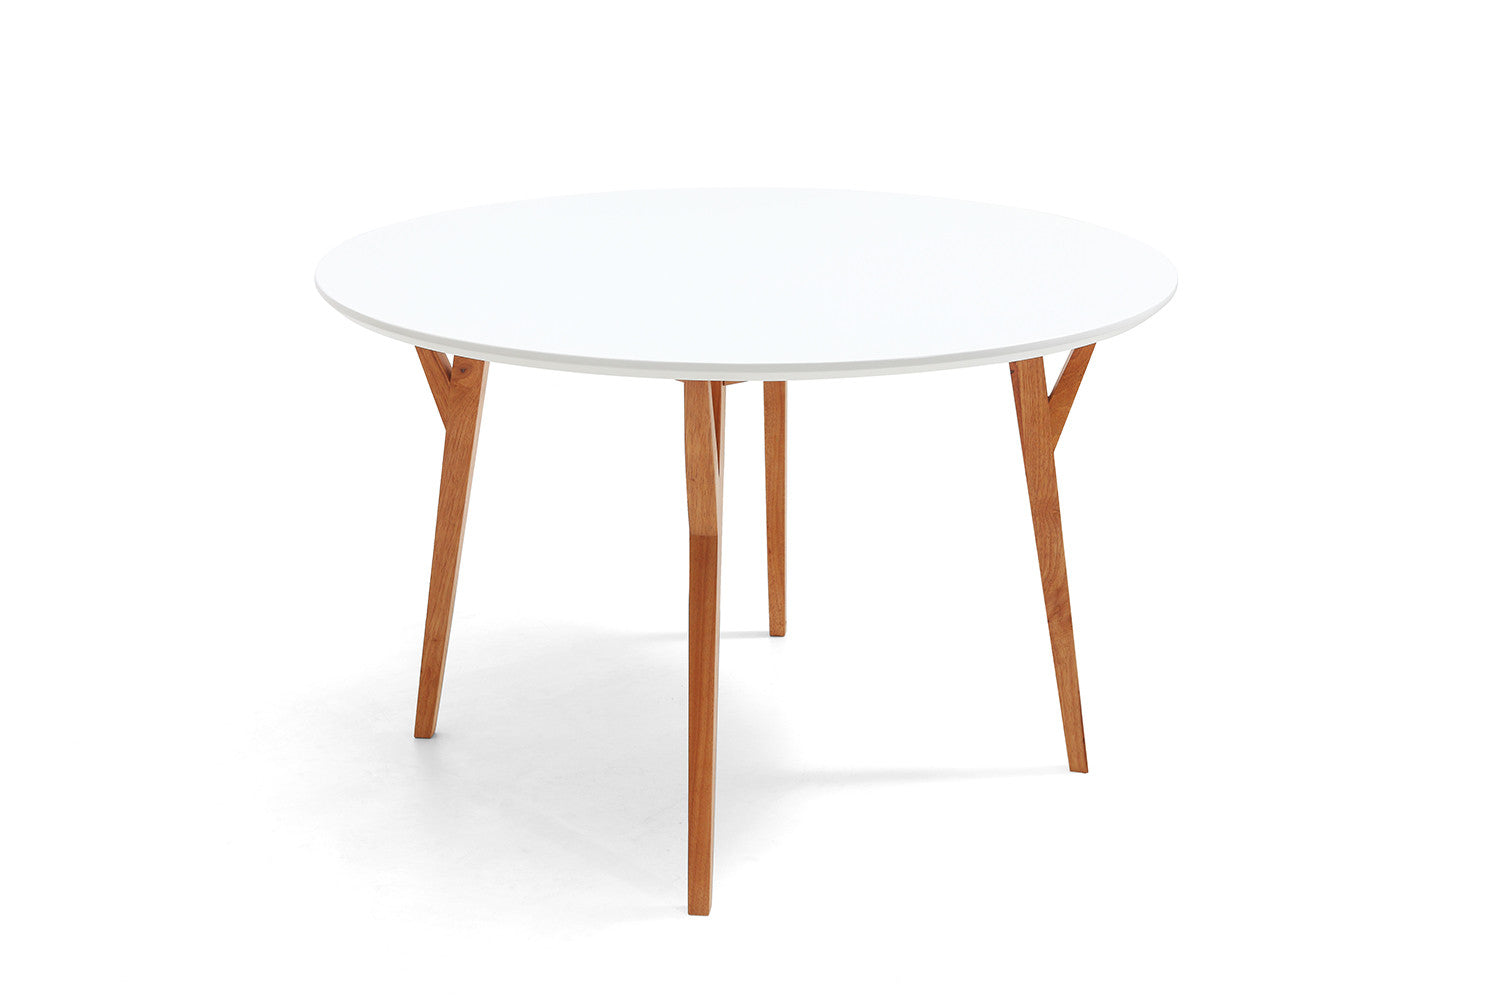 Table de salle manger ronde design scandinave moesa for Table a manger ronde scandinave